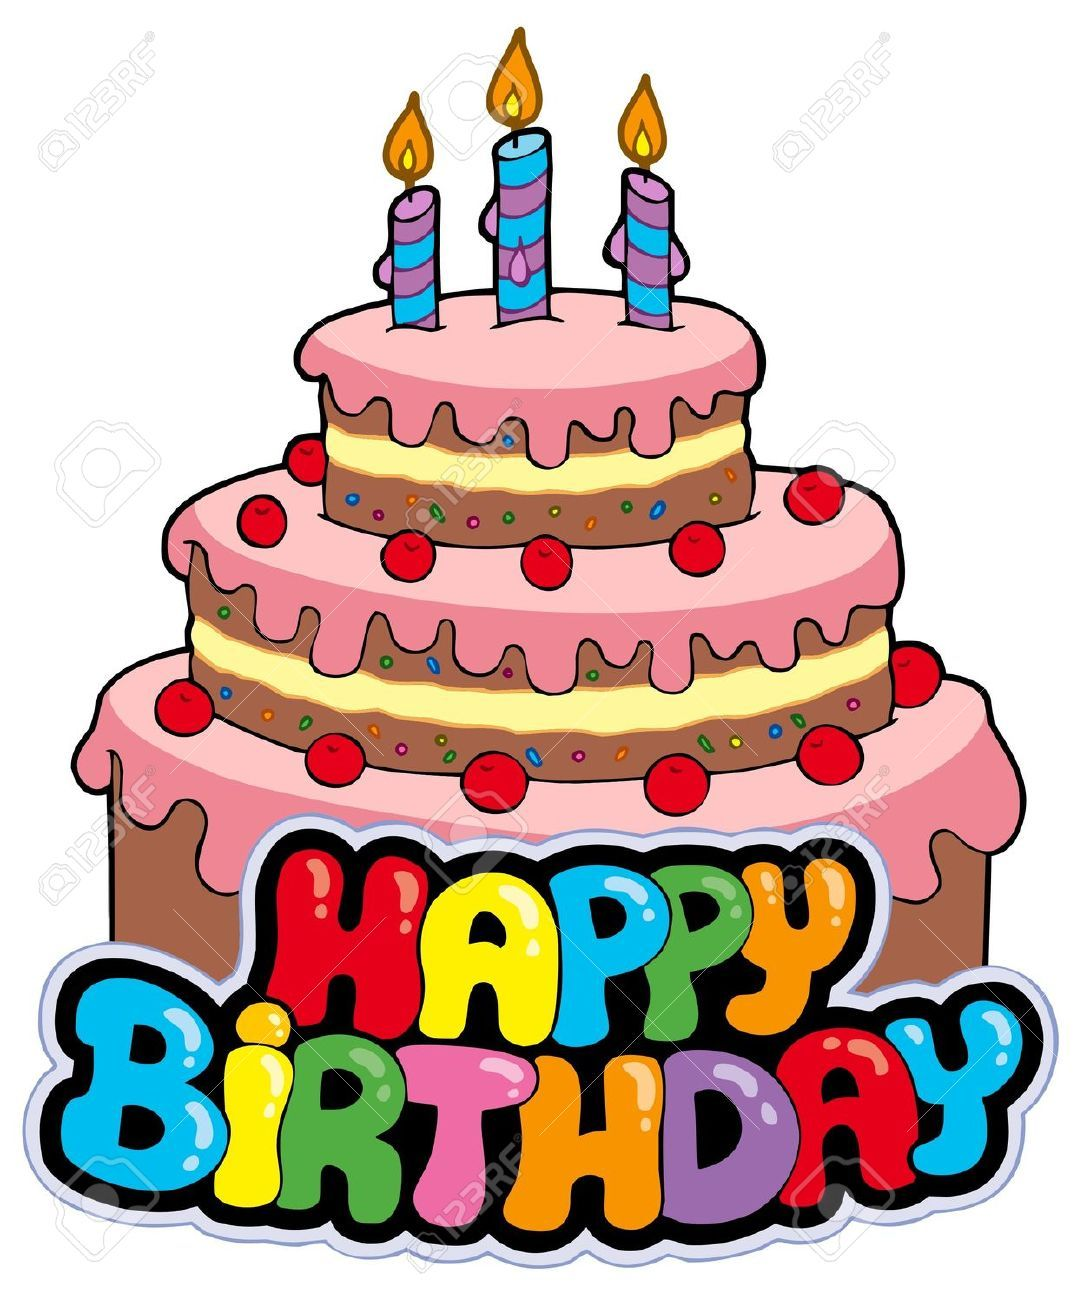 Wishing a very happy. Bing clipart birthday cake